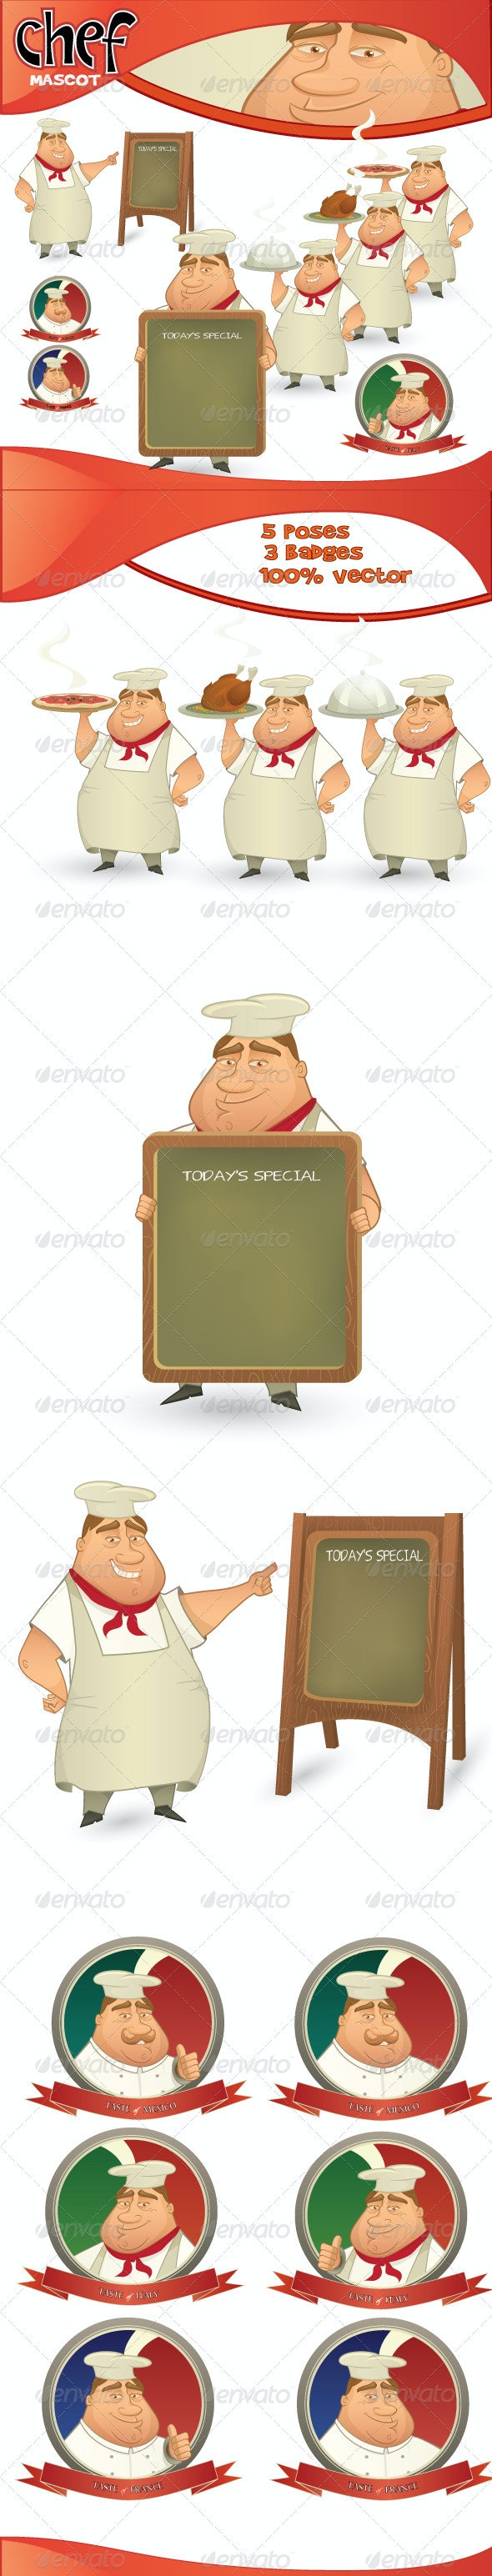 Vector Chef Mascot - People Characters